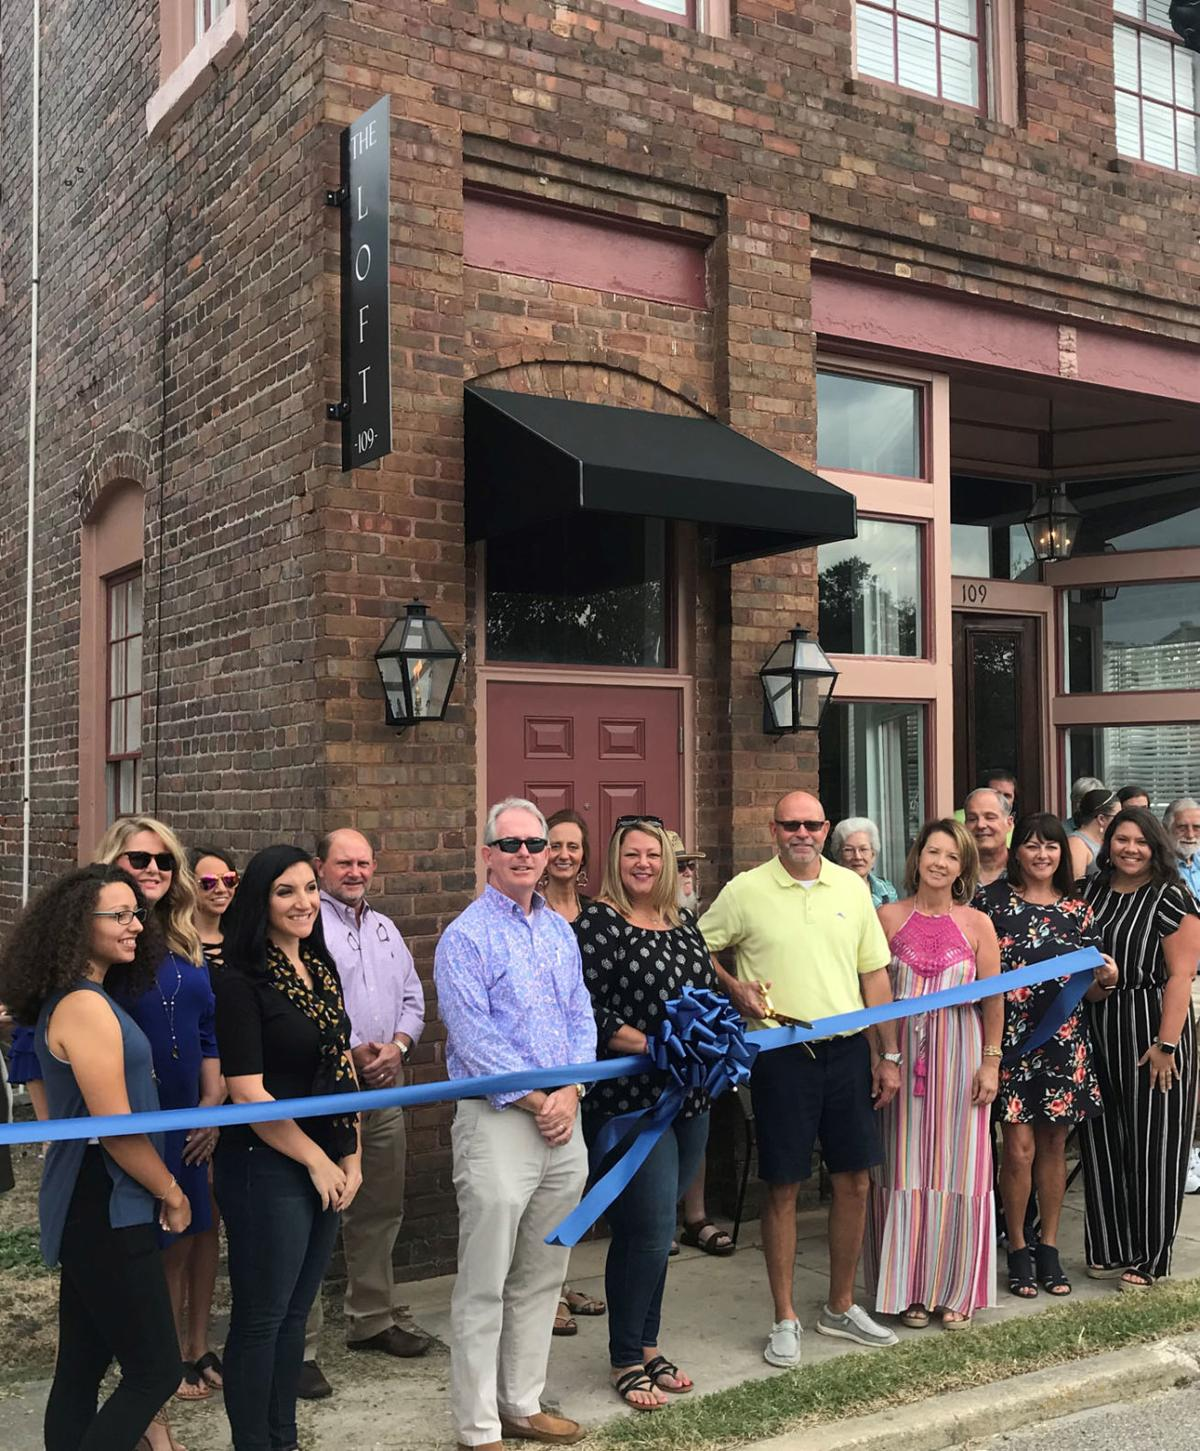 20191016_mse_news_Marion Chamber of Commerce hold ribbon cutting events_p2